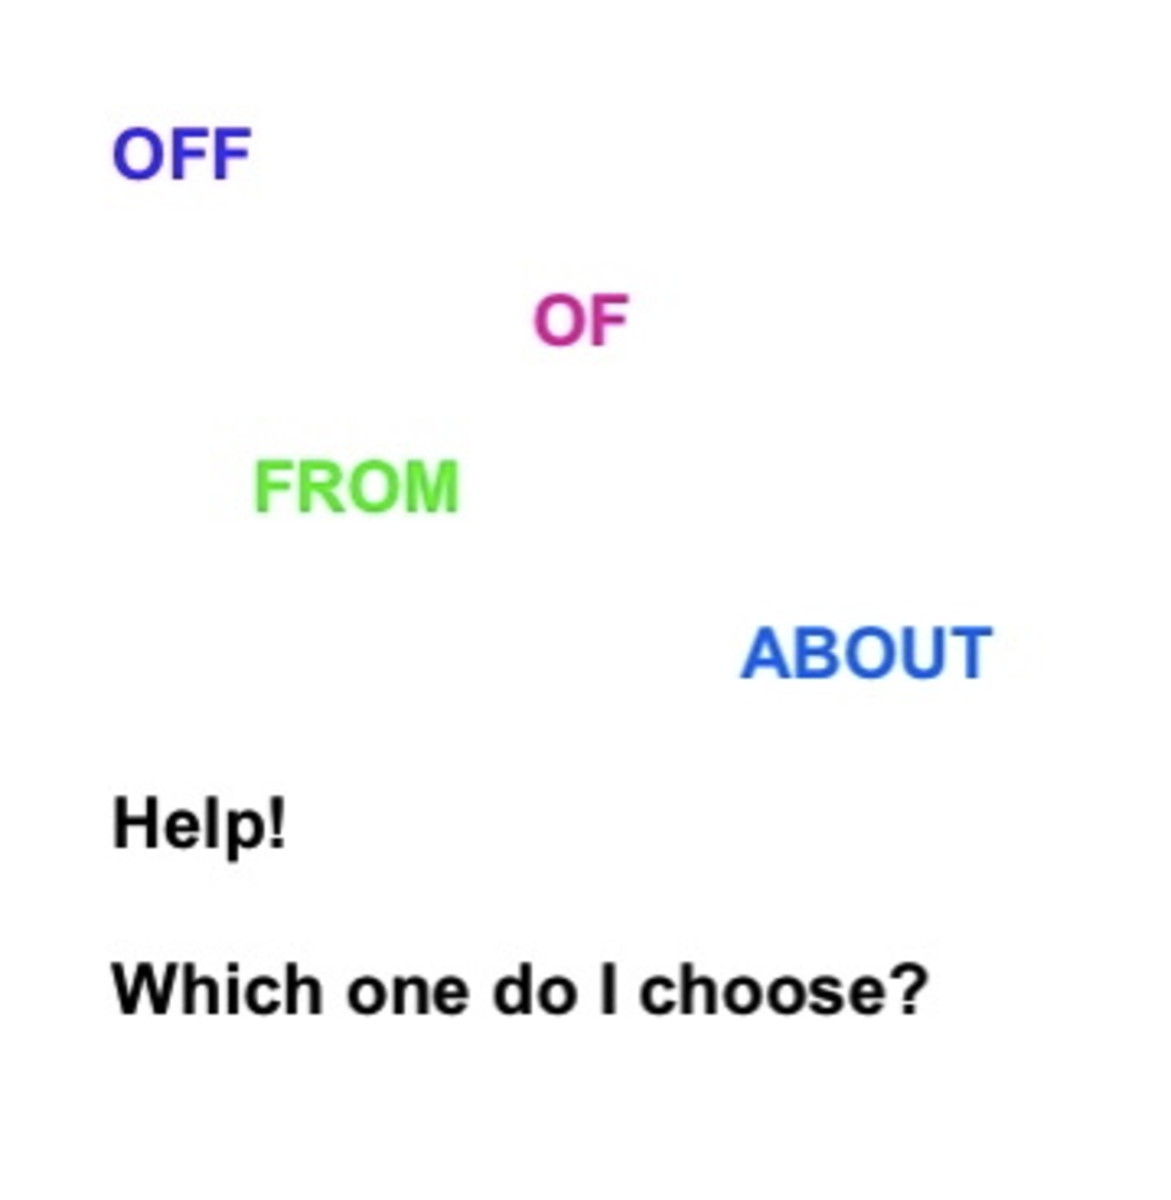 more-common-mistakes-in-english-off-of-from-about-in-single-form-or-as-part-of-expressions